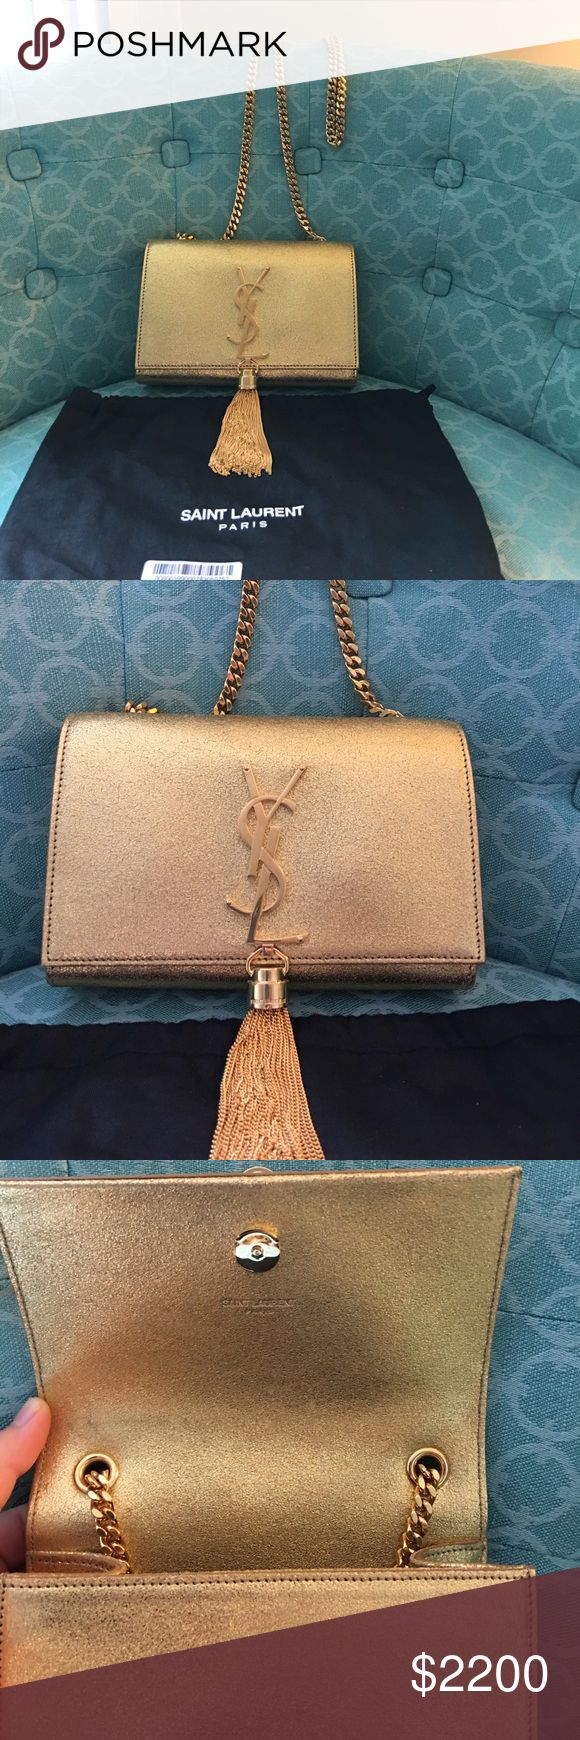 Brand new Yves Saint Laurent gold handbag Brand new with original tags and dust bag. Monogram small calf leather shoulder bag. Width 6.7 in, height 4.7 in, depth 1.6 in, strap 23.2 in. This bag has been sold out online! Yves Saint Laurent Bags Shoulder Bags